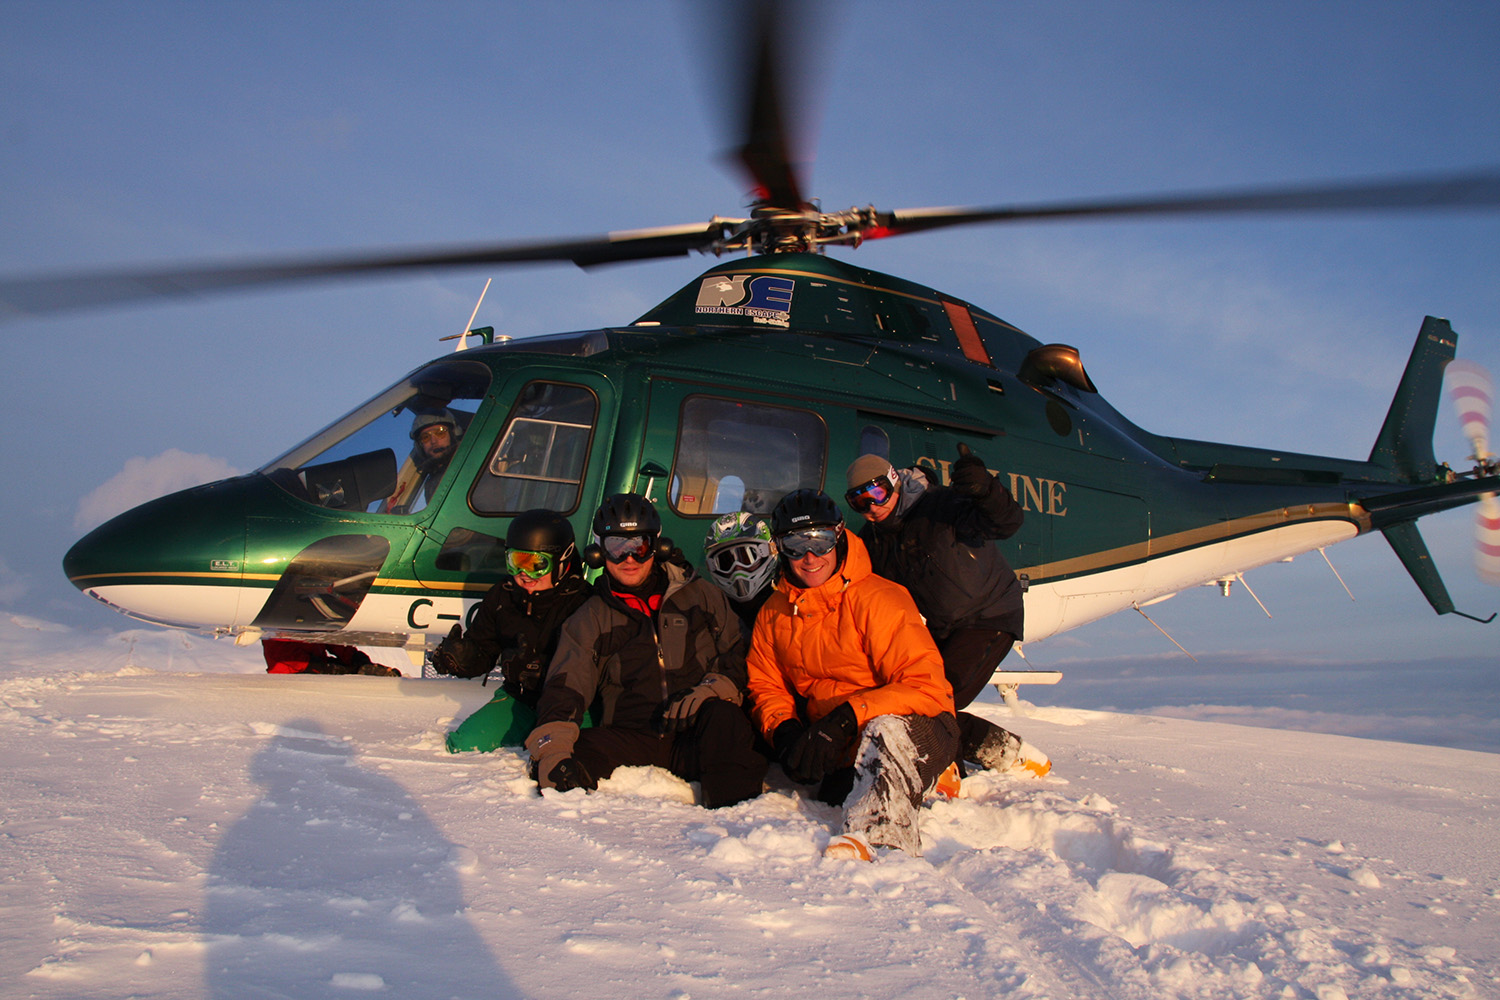 Heli ski in Koala helicopters which offer more space, more power and more speed.